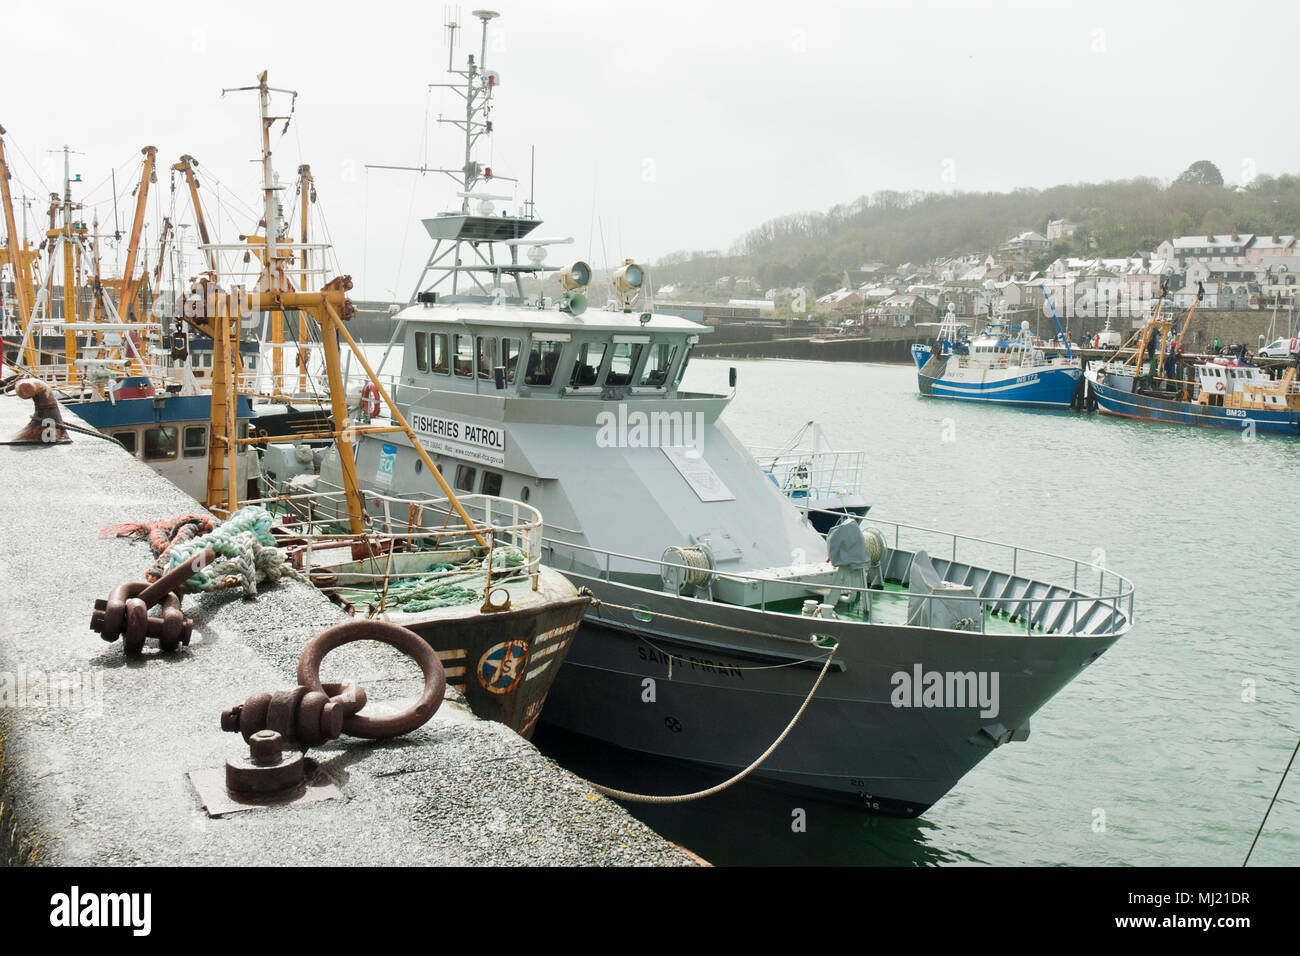 The Fisheries Patrol vessel, Saint Piran, in the foreground with fishing boats and the town of Newlyn in the background. - Stock Image